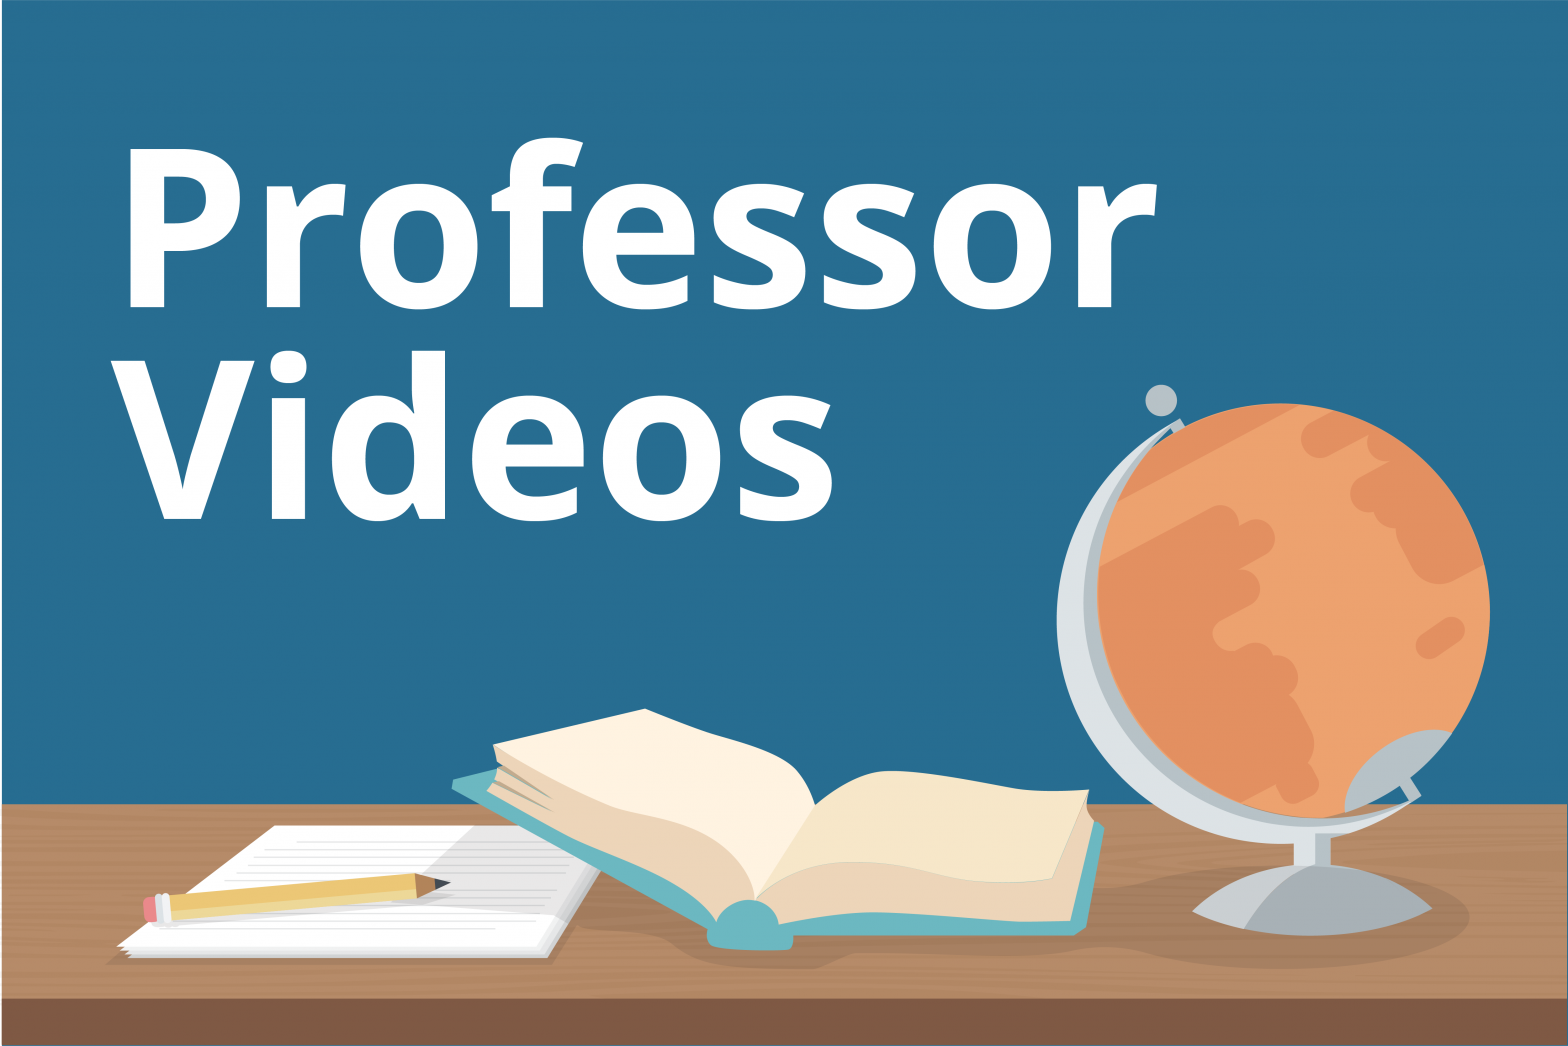 """Professor Videos"" over a graphic of a desk, pencil and paper, open book, and globe"